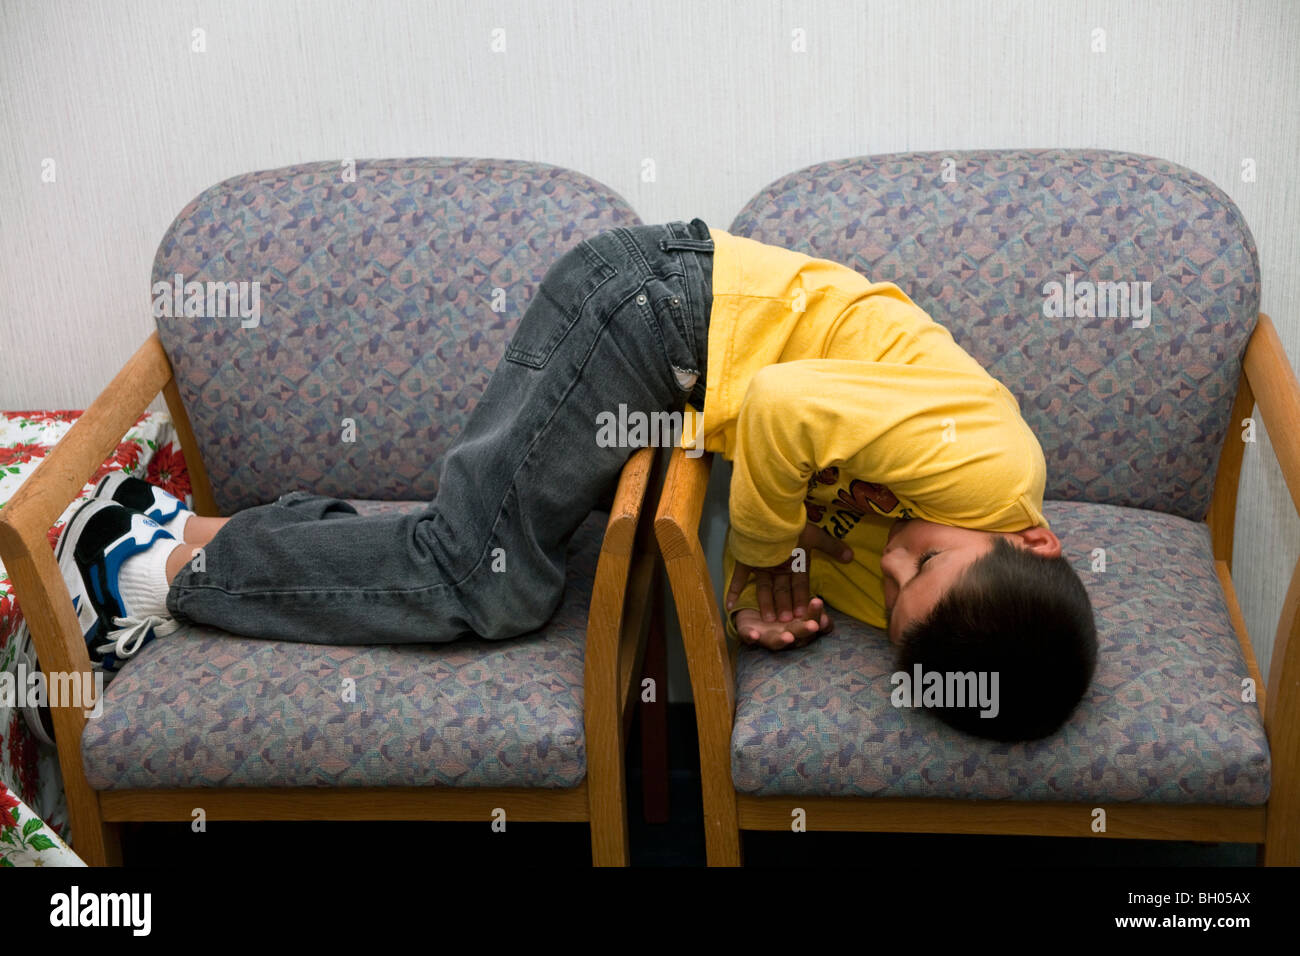 7-8 years old Hispanic  adhd boy waiting for his appointment with the doctor. MR  © Myrleen Pearson - Stock Image